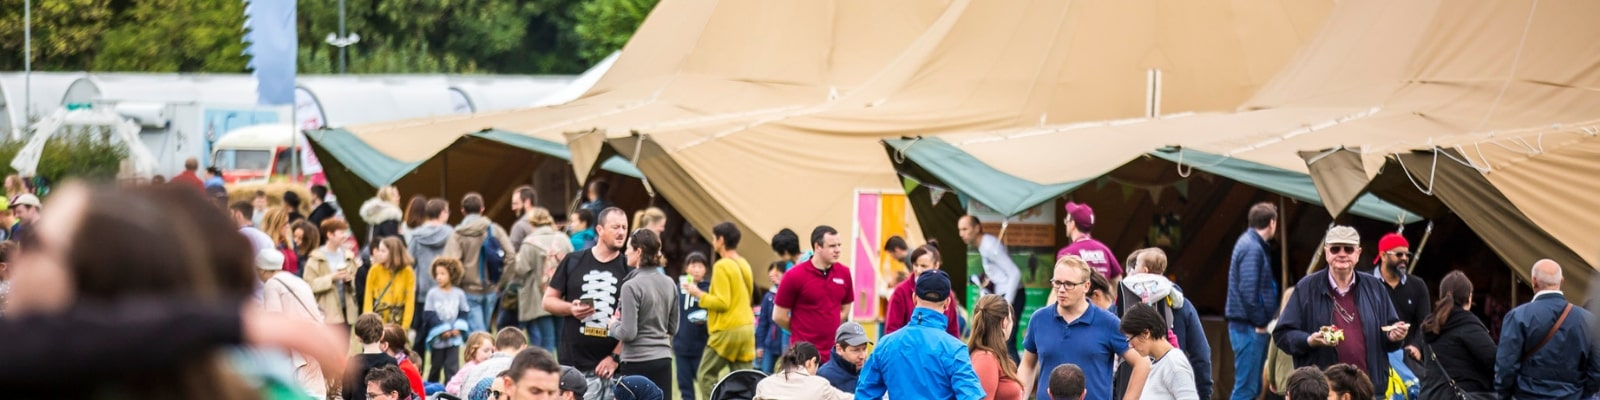 https://www.airfield.ie/wp-content/uploads/2019/05/Festival-of-Food-Busy-min.jpg